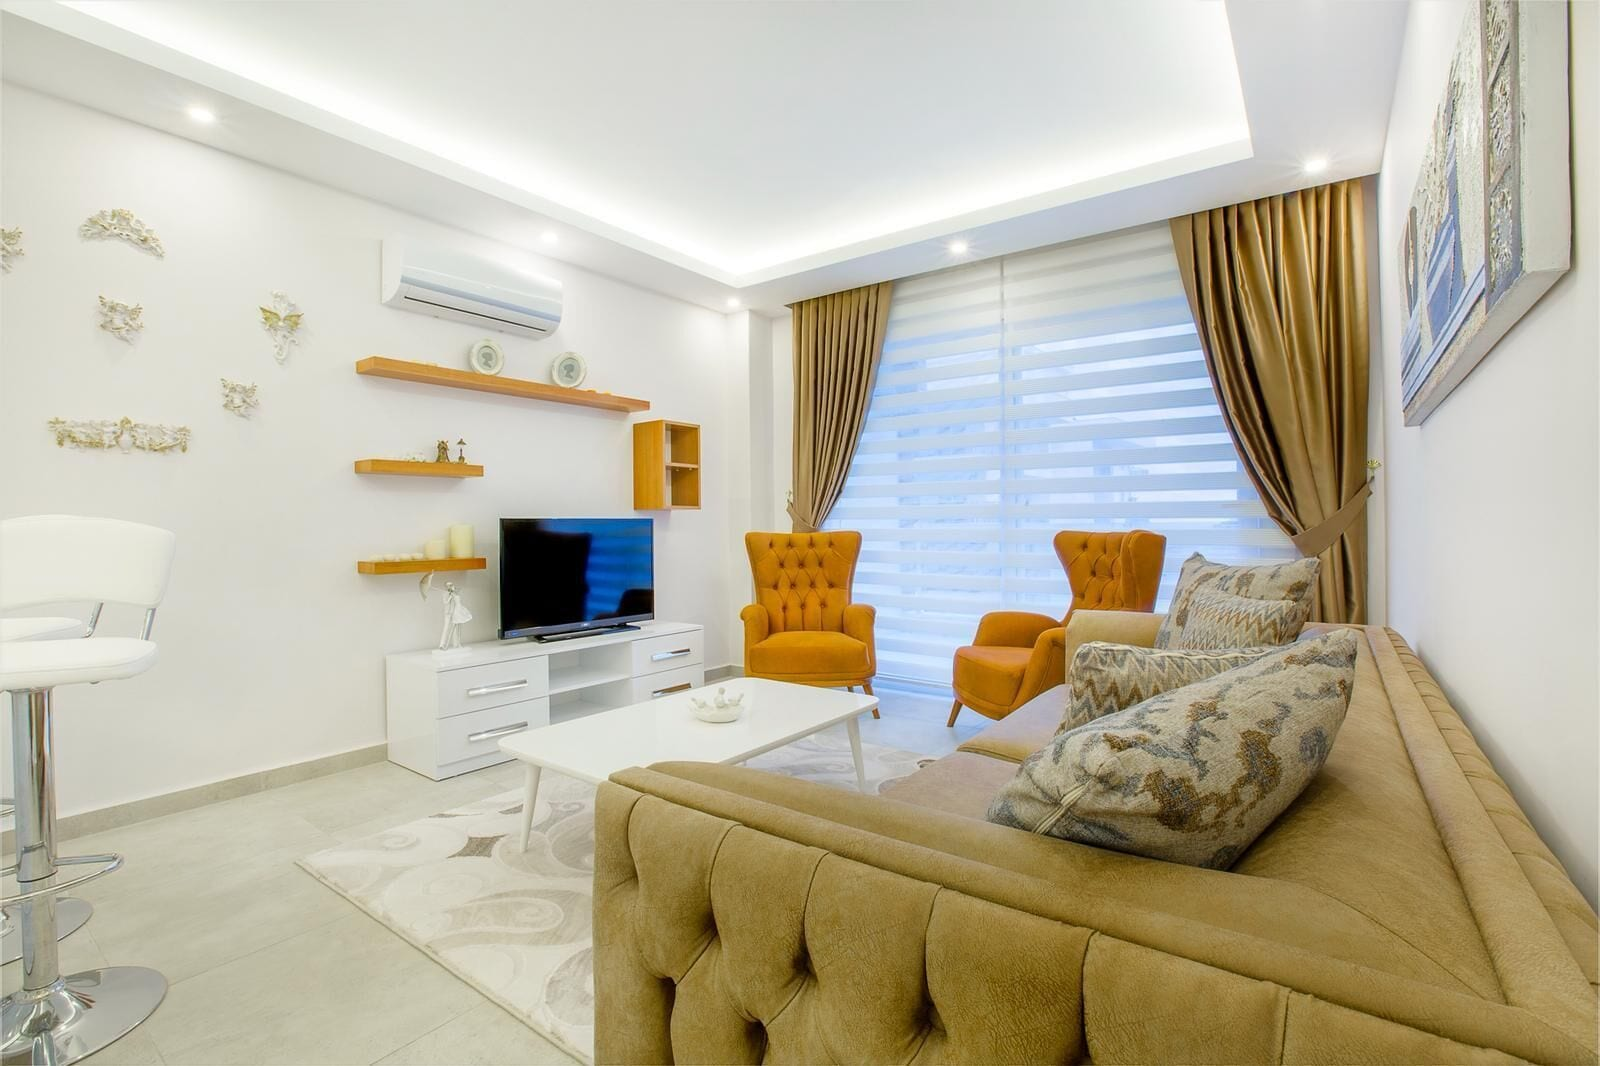 Picture of: Sea View Apartment At The Beach Alanya Kestel 1 Bedroom 1 Living Room Alanya Tyrkiet Expedia Dk